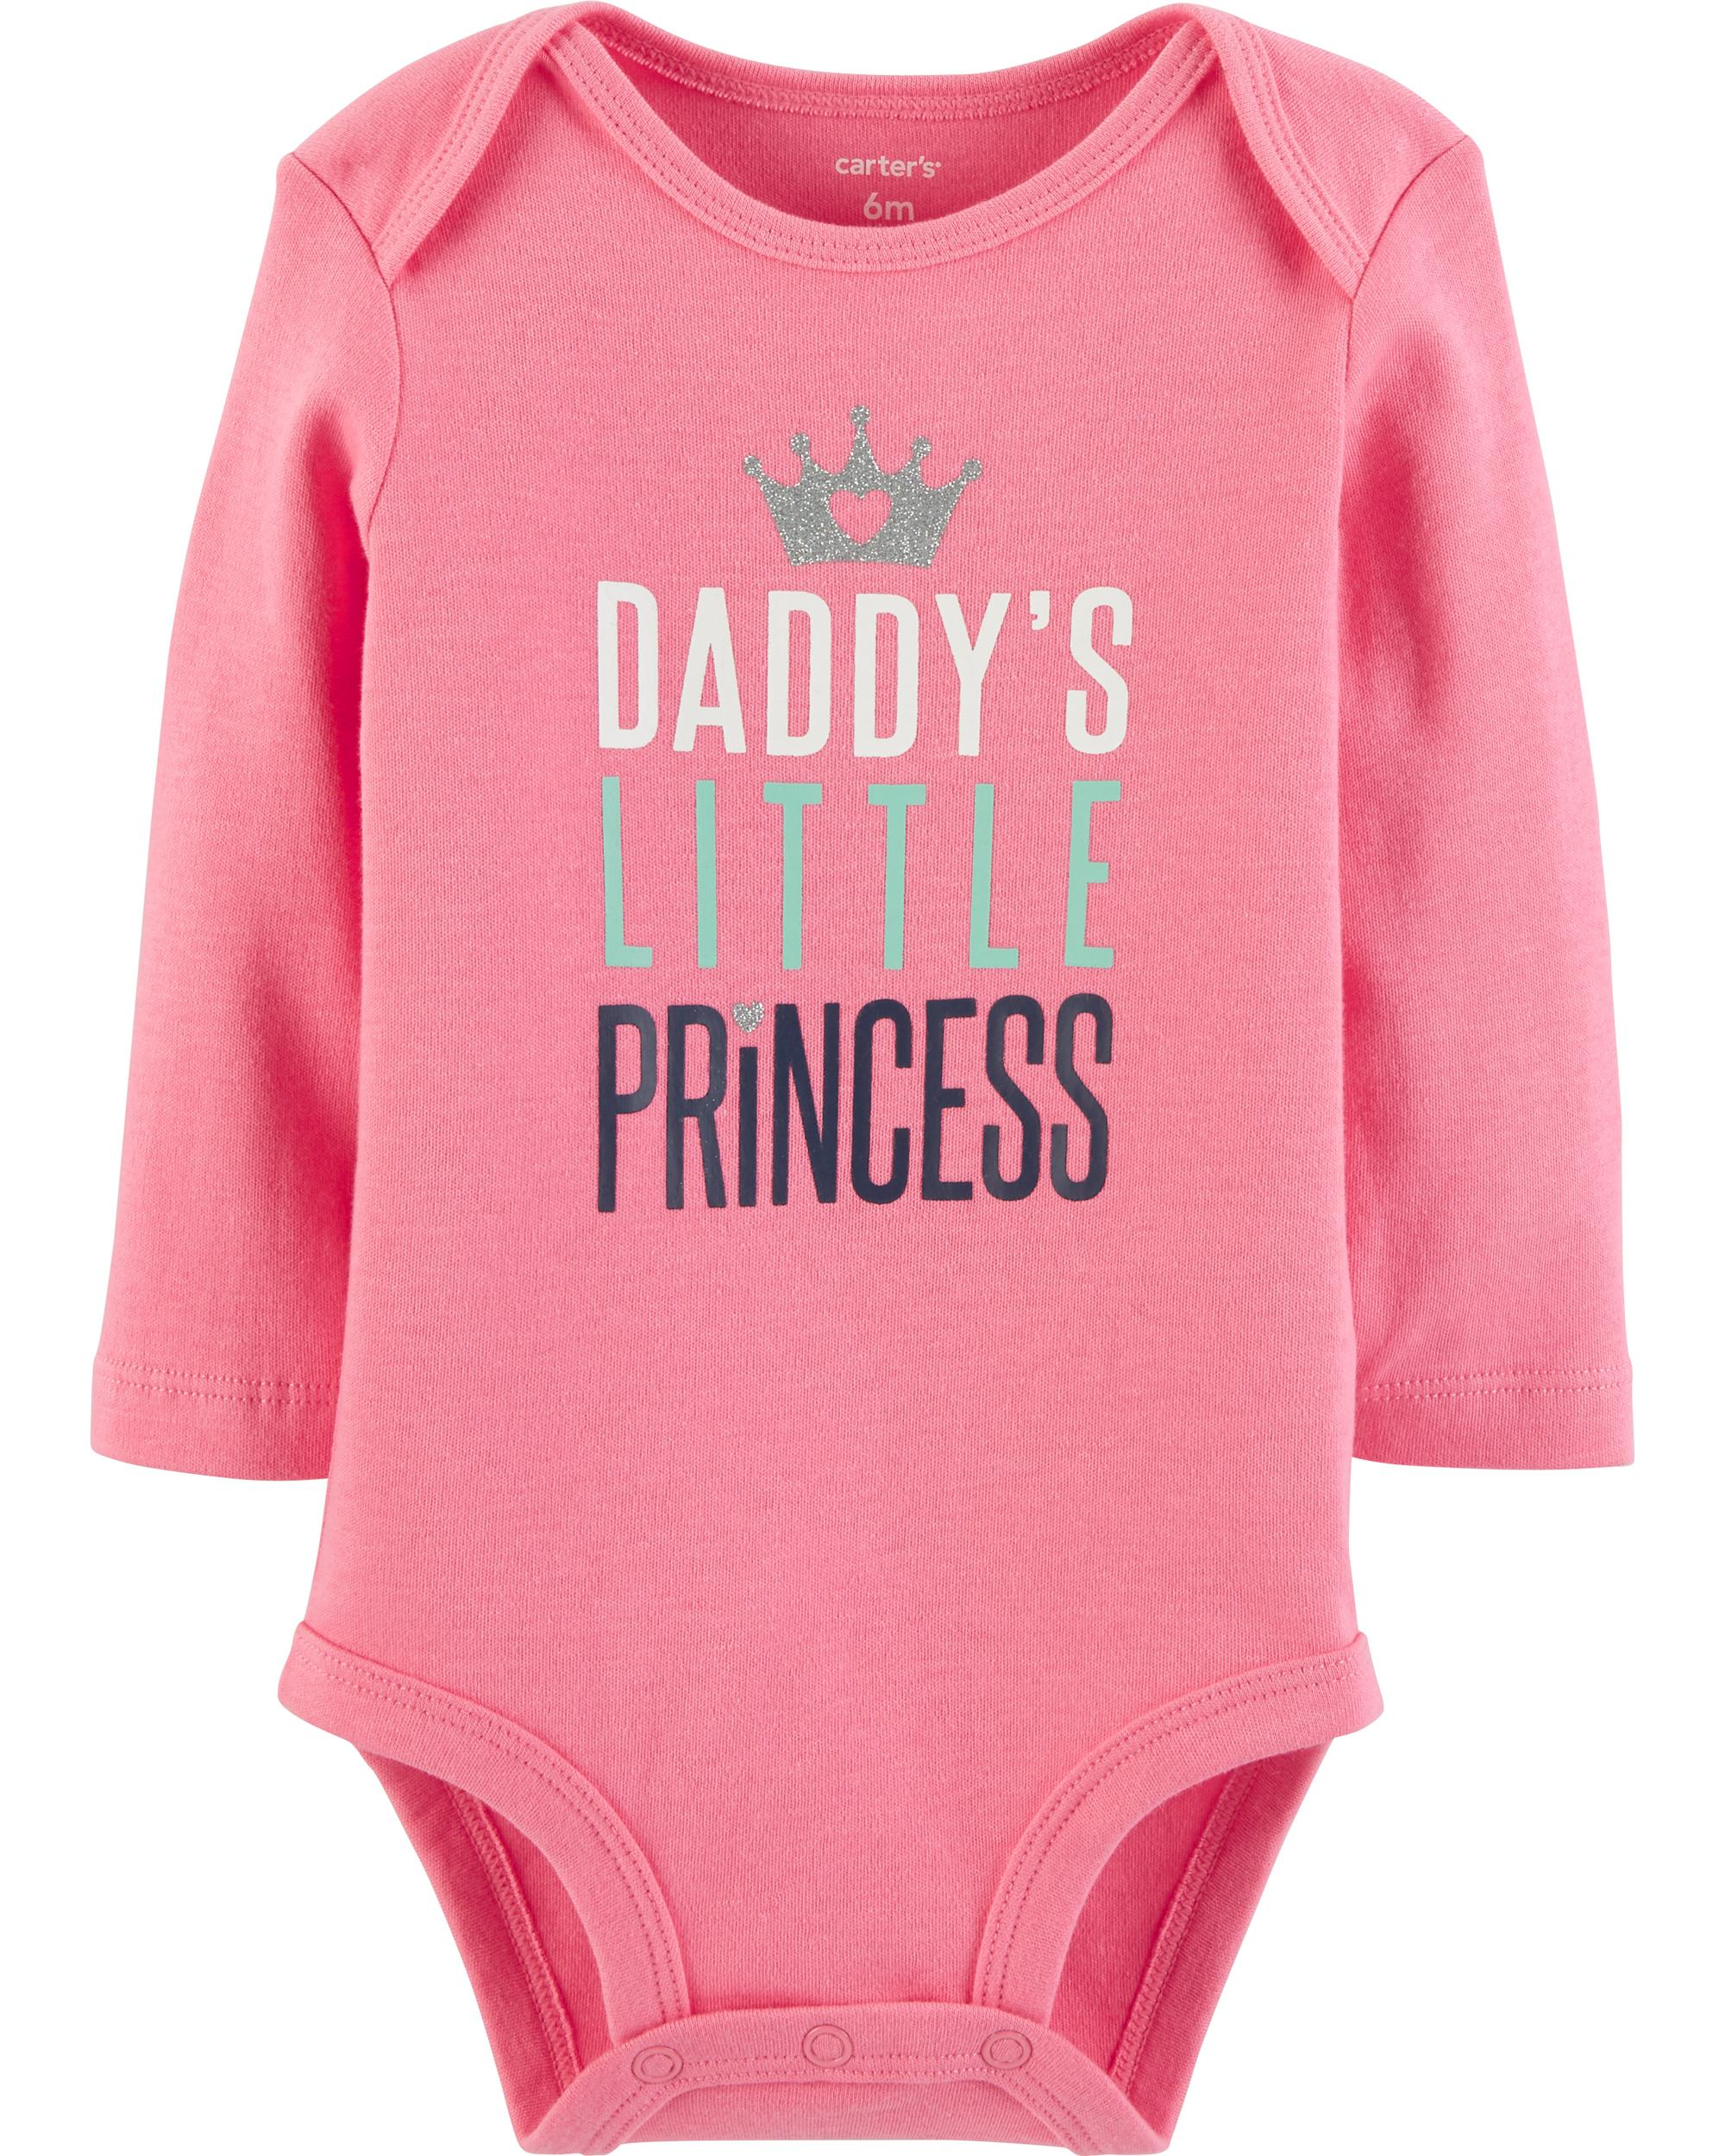 72b484ab65fa9 Daddy's Little Princess Collectible Bodysuit   carters.com